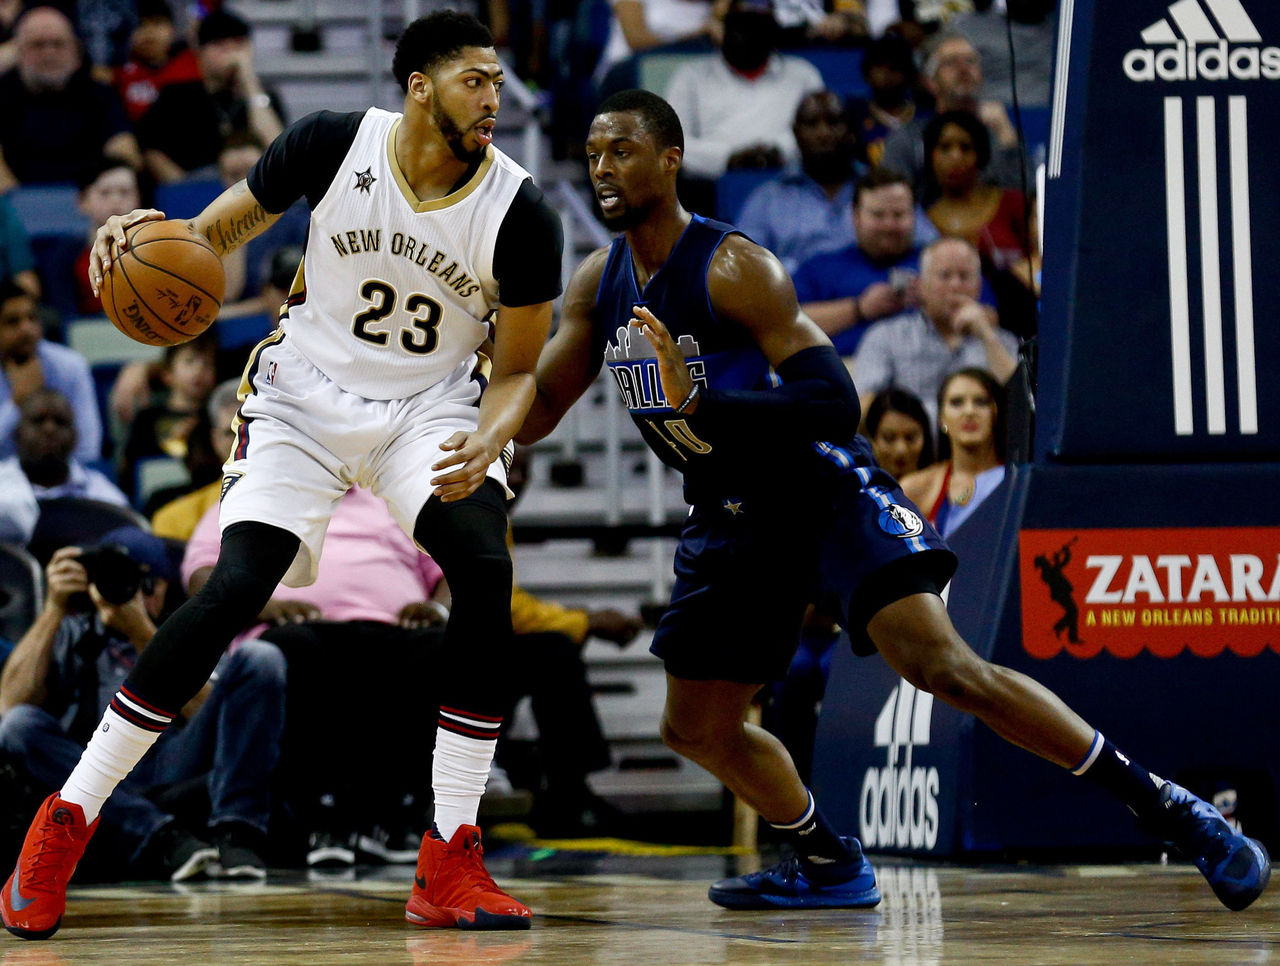 Cropped 2016 12 27t022934z 9095294 nocid rtrmadp 3 nba dallas mavericks at new orleans pelicans